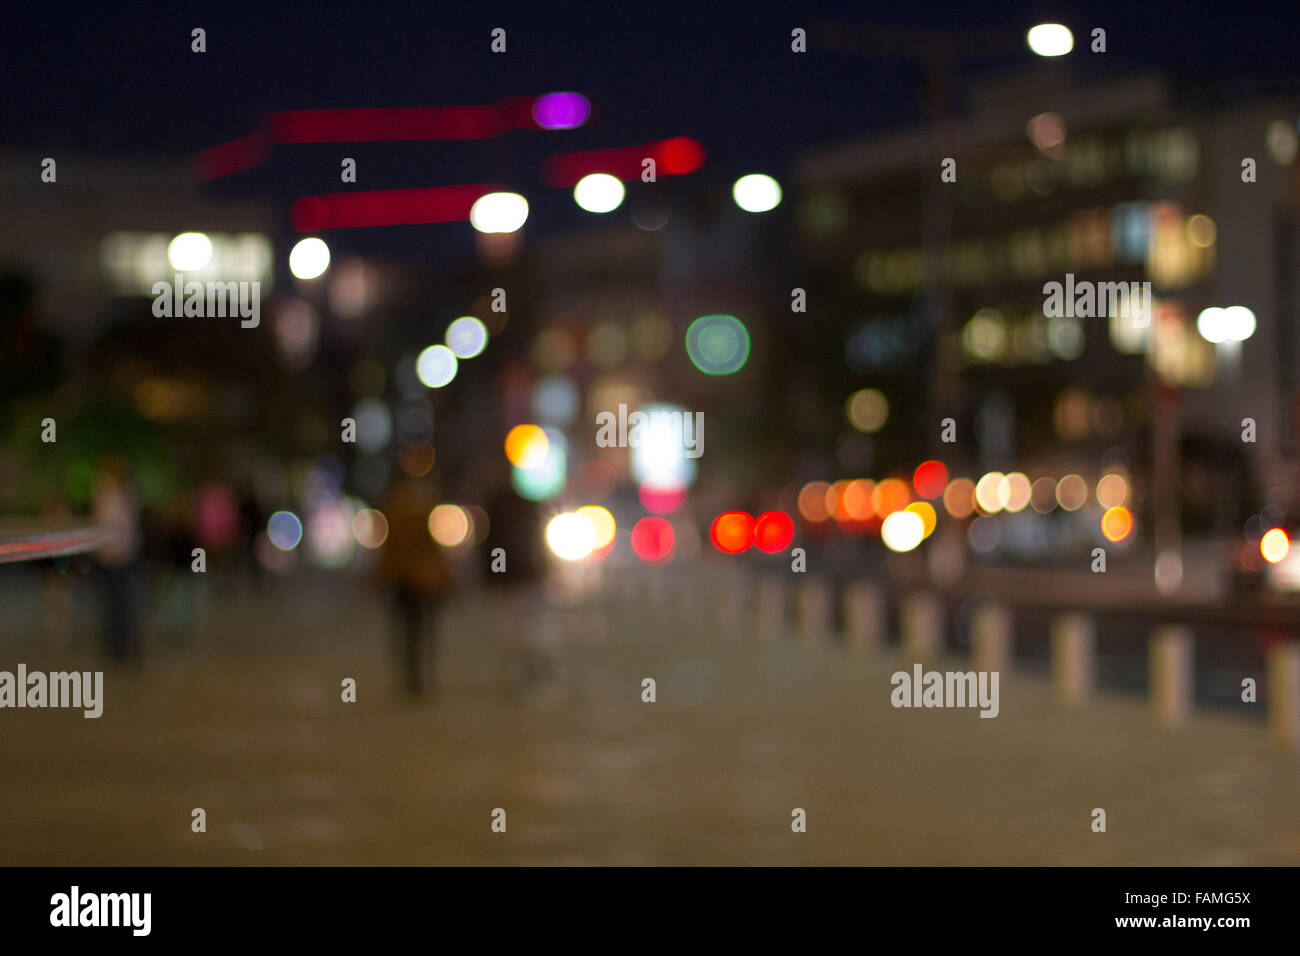 Defocused urban abstract texture ,bokeh of city lights in the background with blurring lights for your design - Stock Image